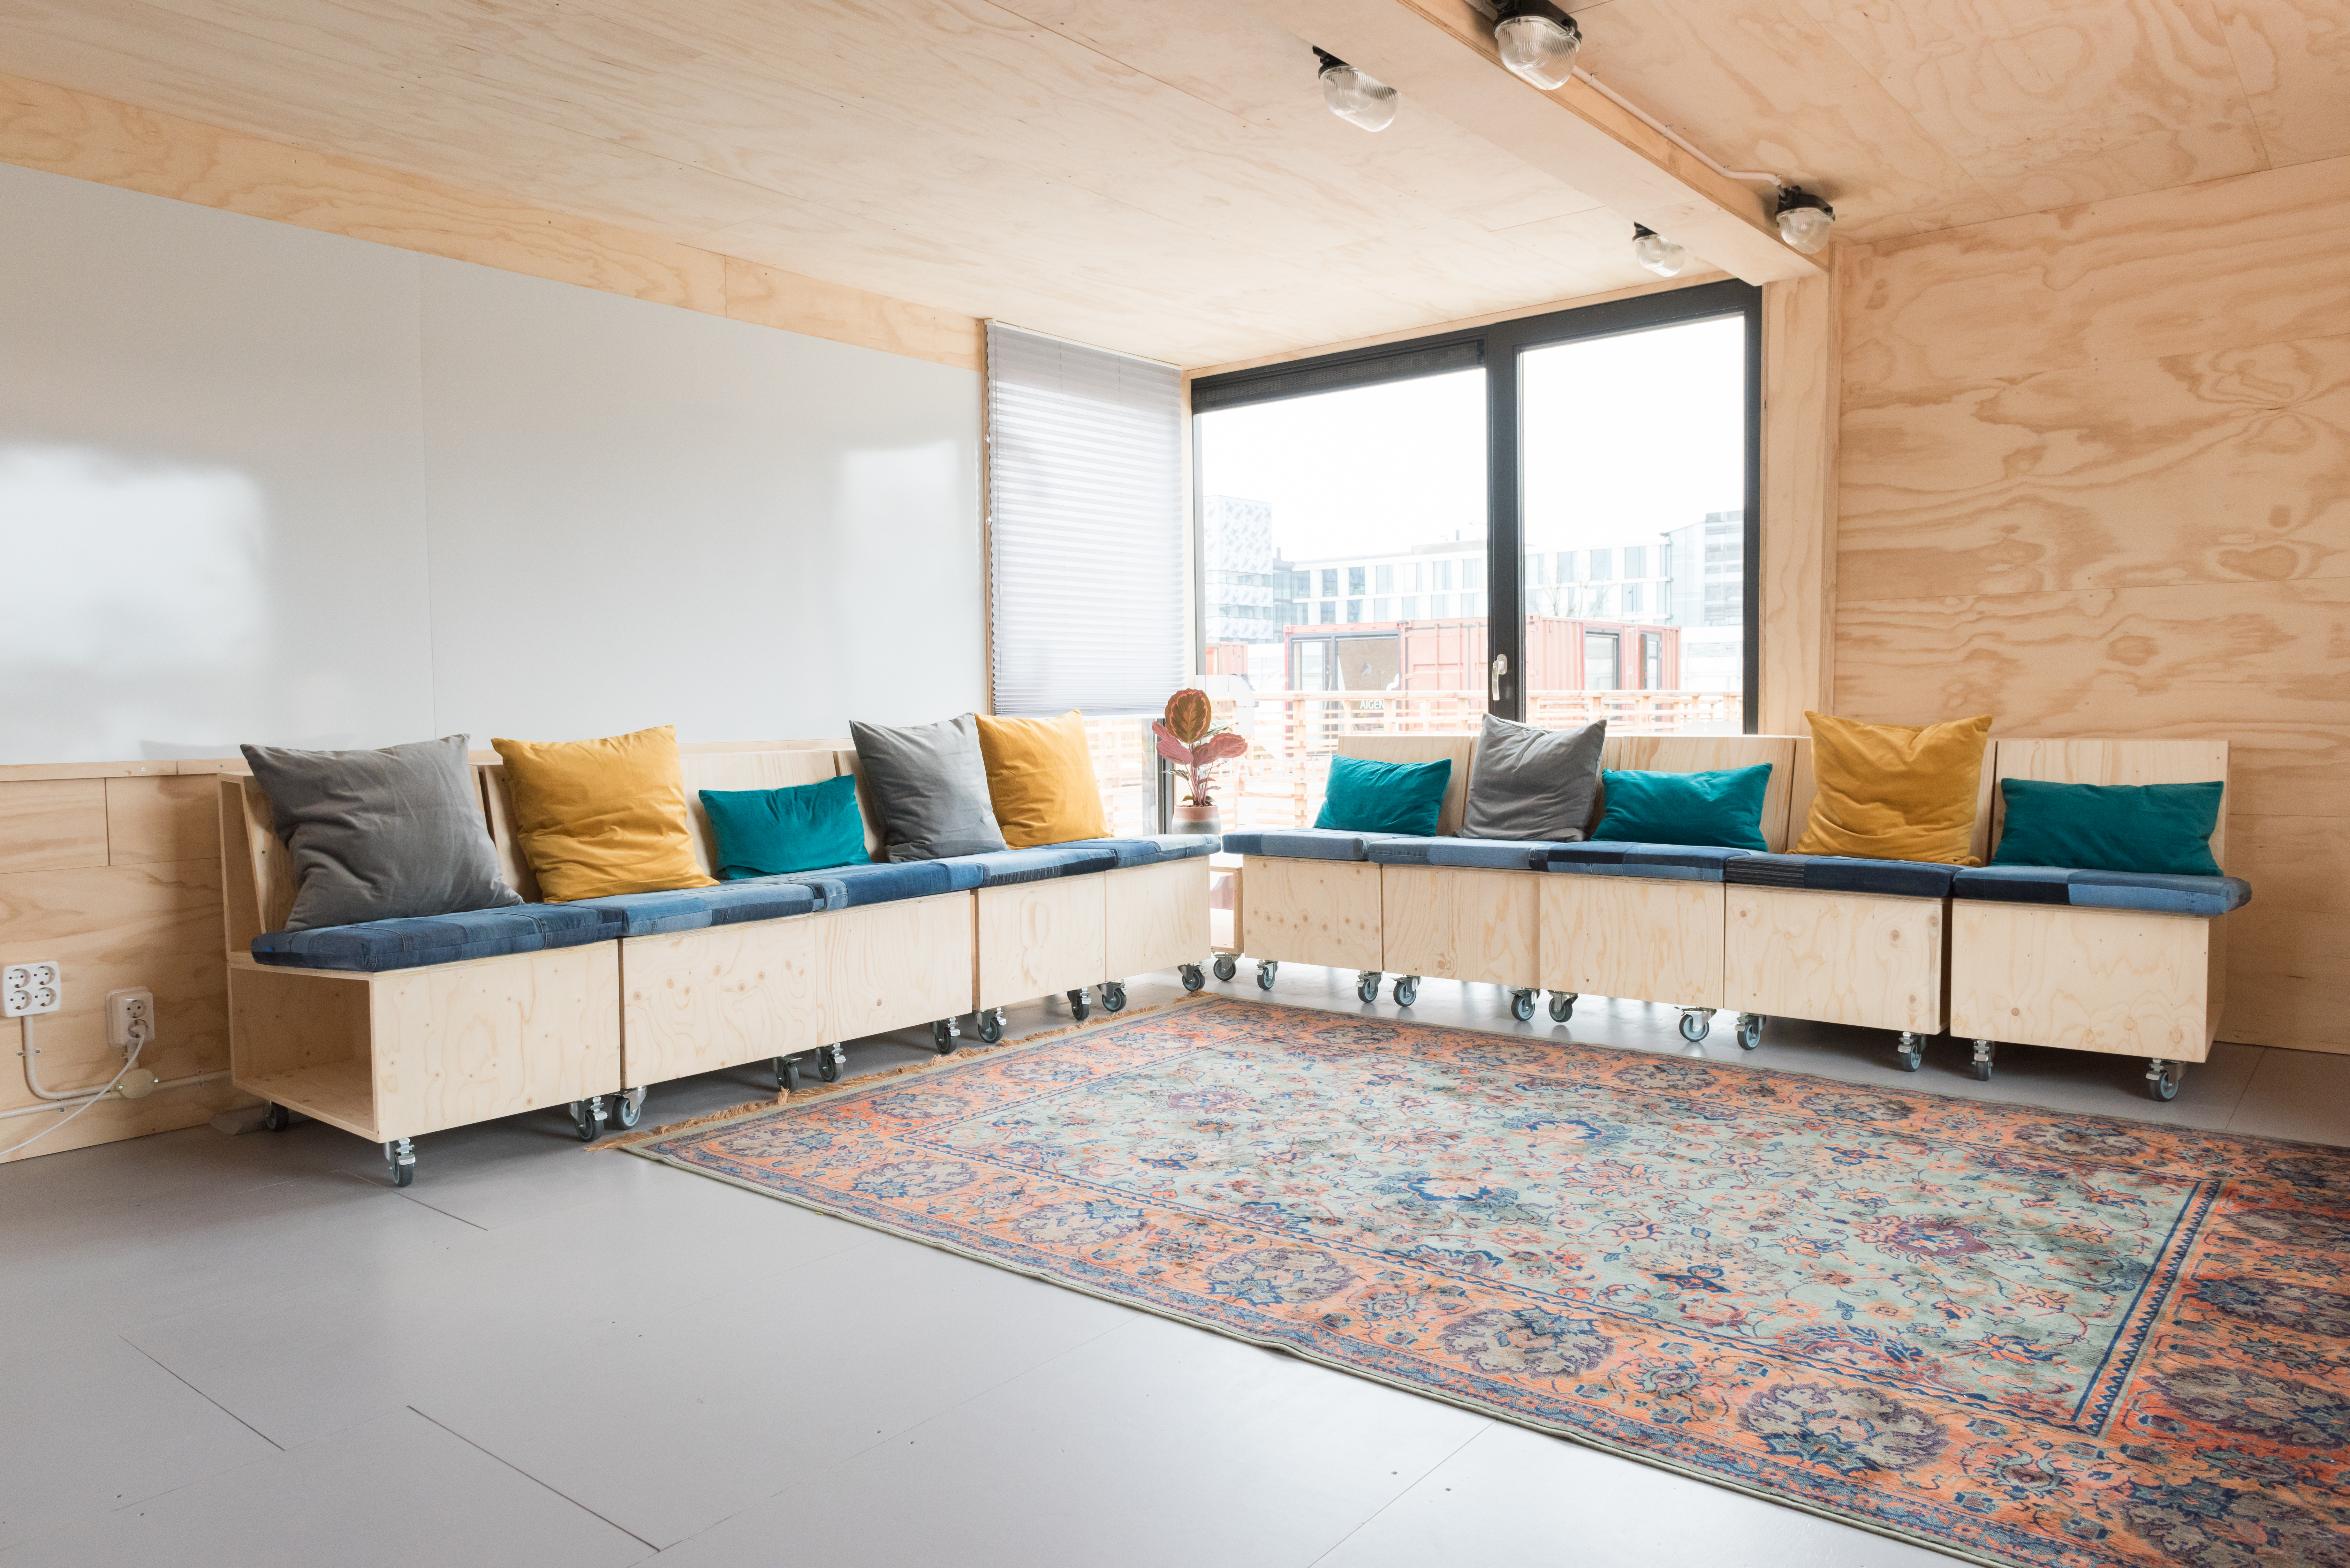 Interieurconcept Interieurontwerp interior Design architectuur architecture Hacking Hackers Amsterdam Haarlem Startup Village Infosupport Innovation Lab Studio Mind Co working space brainstorm kantoor ontwerp flexible interieur interieurstyling